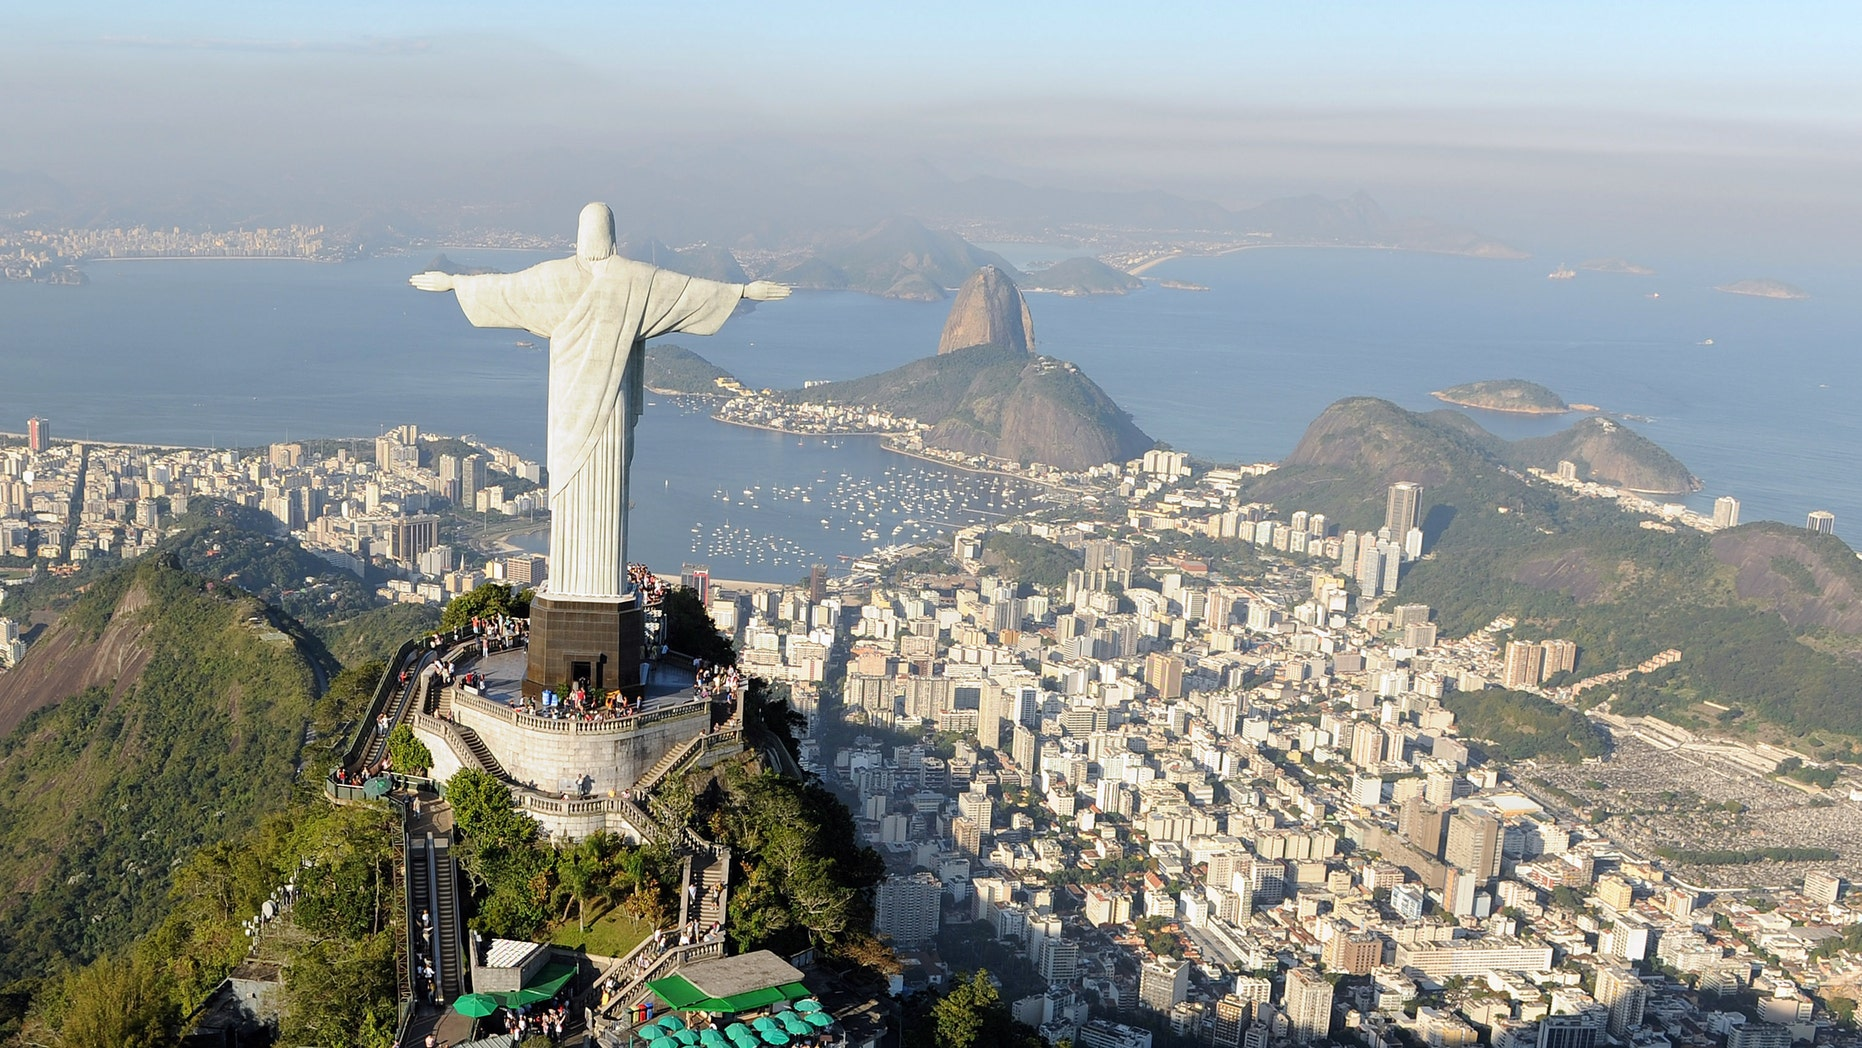 RIO DE JANEIRO, BRAZIL - JULY 27:  An aerial view of the 'Christ the Redeemer' statue on top of Corcovado mountain on July 27, 2011 in Rio de Janeiro, Brazil.  (Photo by Michael Regan/Getty Images)